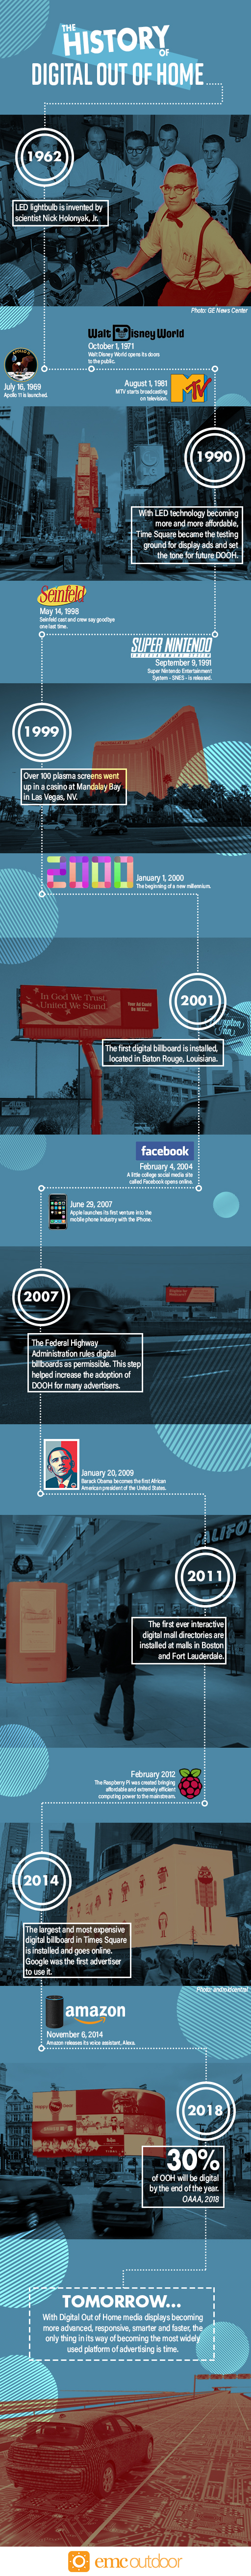 EMCOutdoor-History-of-Digital-Out-of-Home